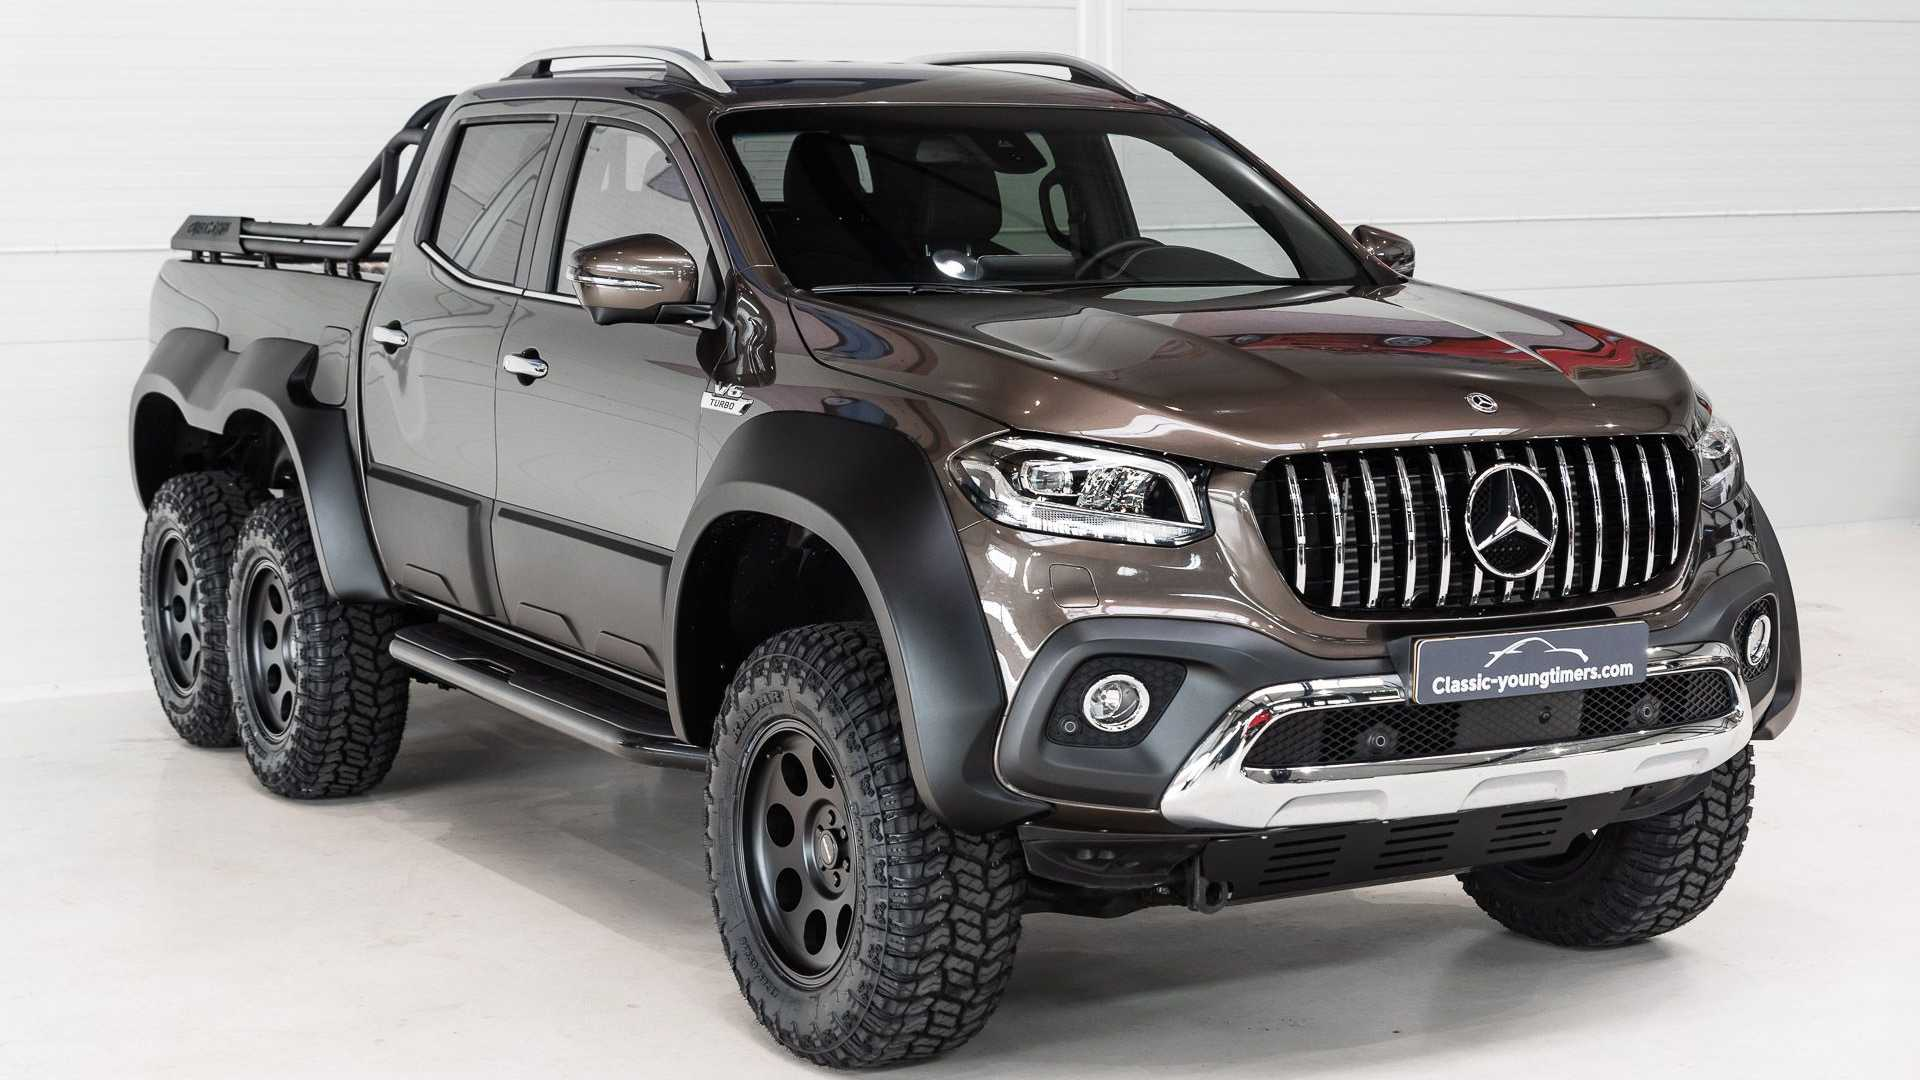 Mercedes will be permanently retiring the X-Class pickup line later this month, but tuners keep coming up with new and creative ways to turn the truck into something special.